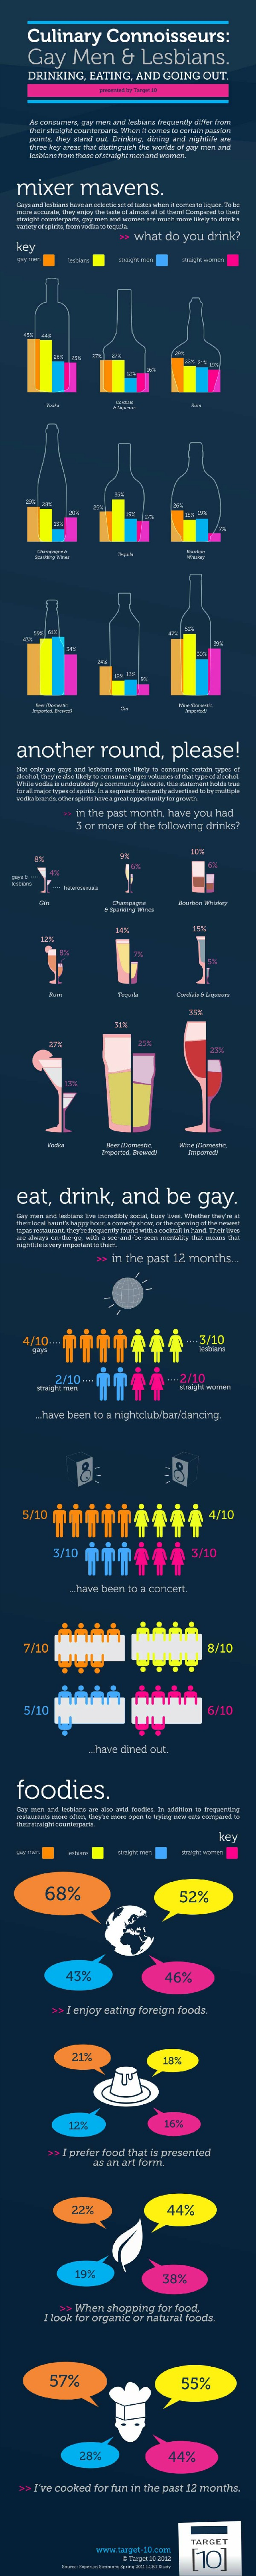 Gays-and-Lesbians-Liquor-Infographic